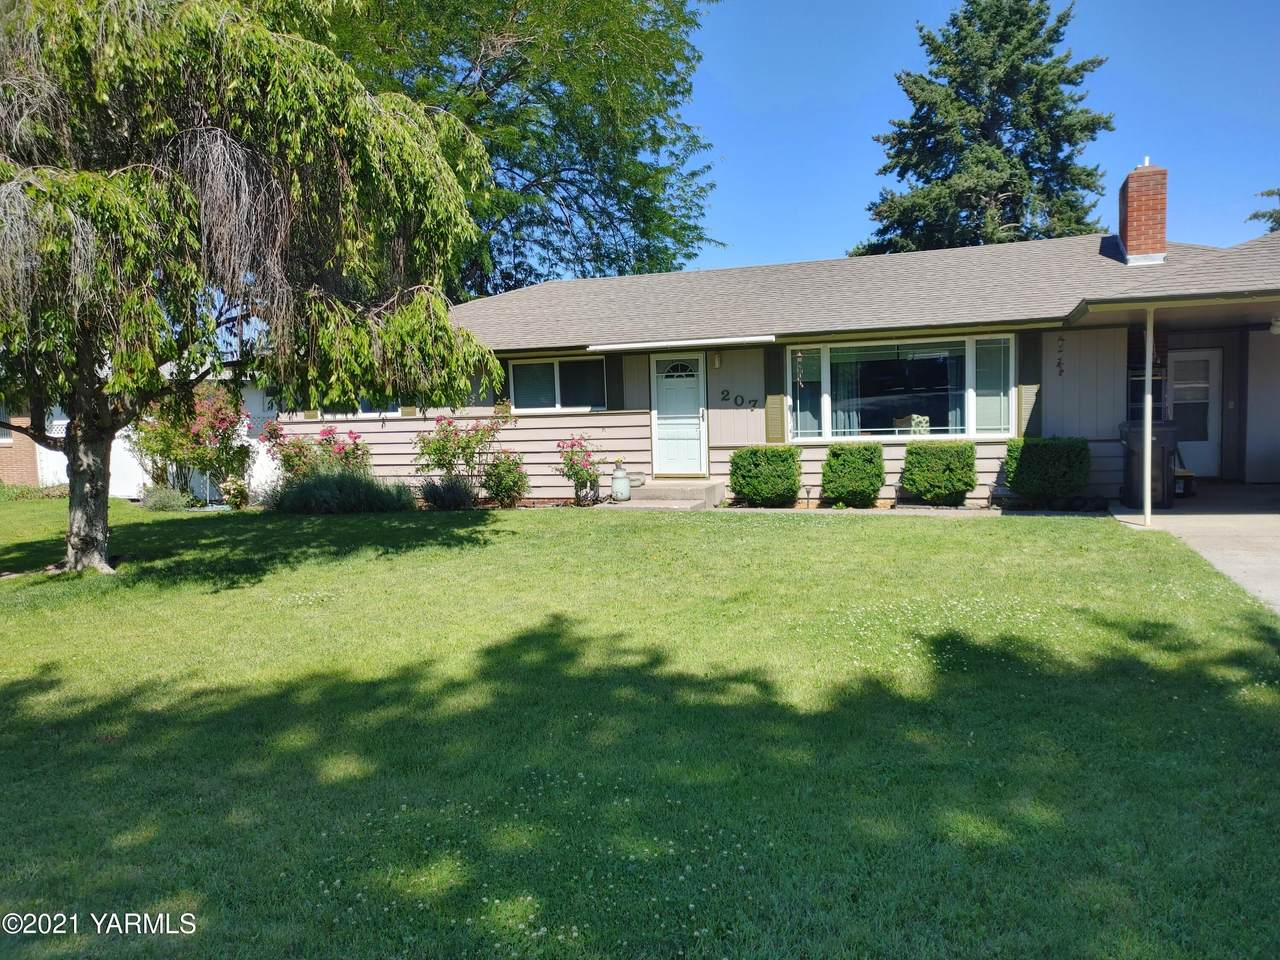 207 58th Ave - Photo 1